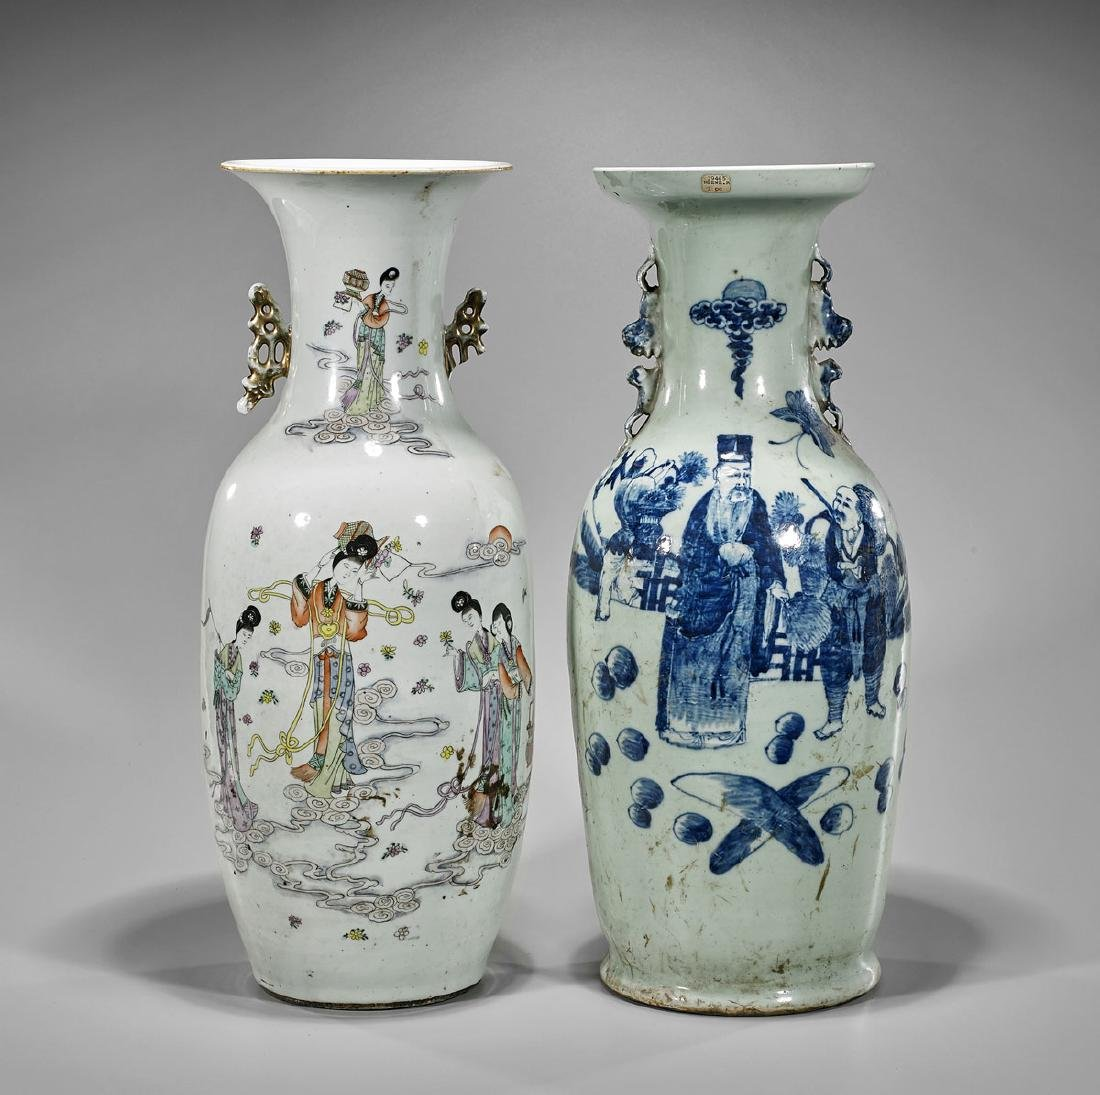 Two Antique Chinese Porcelain Vases: Celestial Maidens